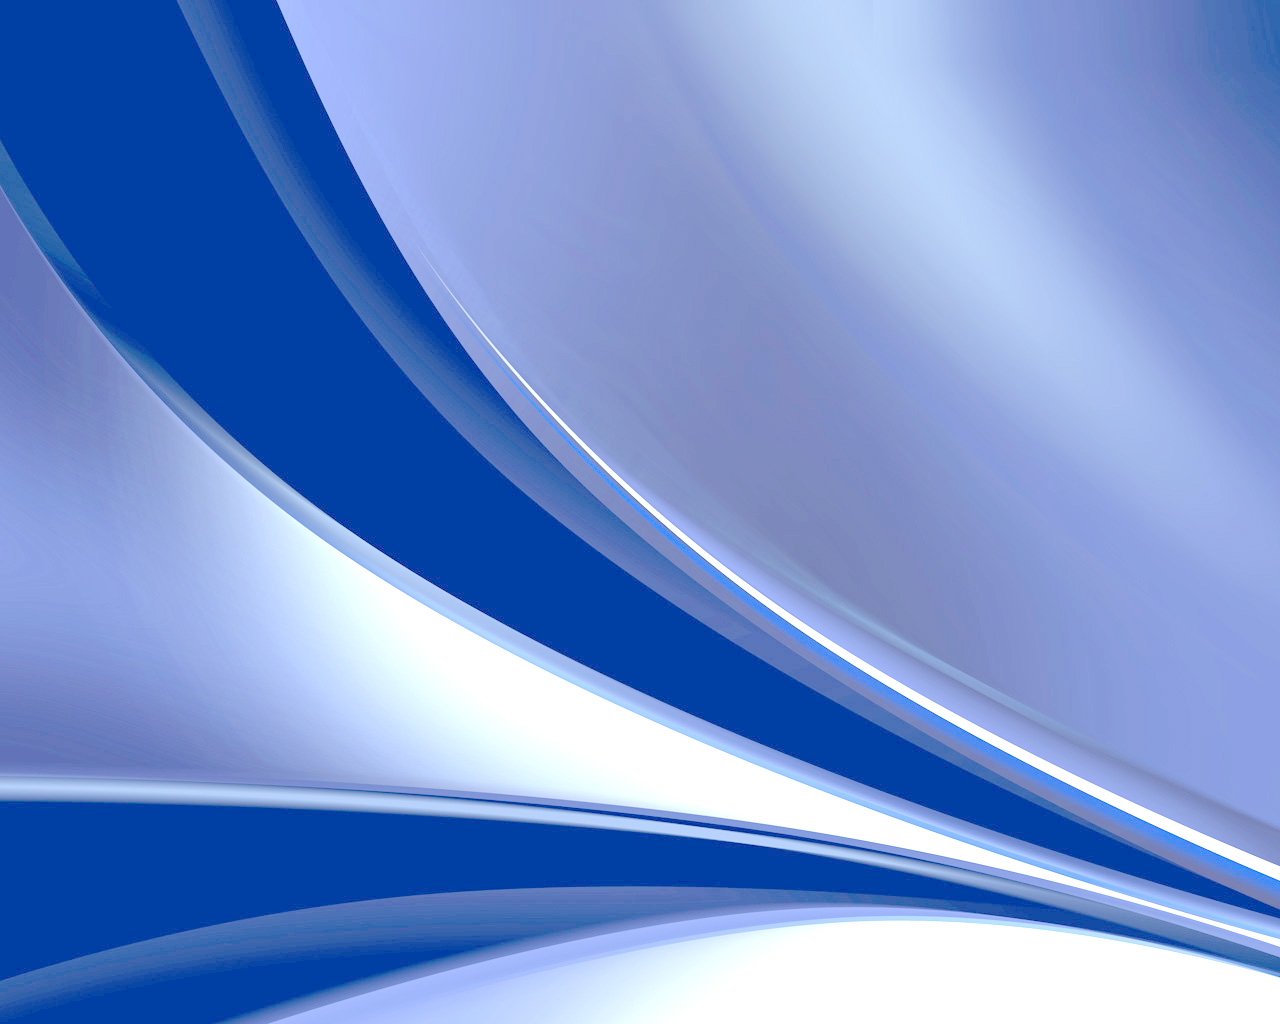 Blue Abstract Powerpoint PPT Backgrounds